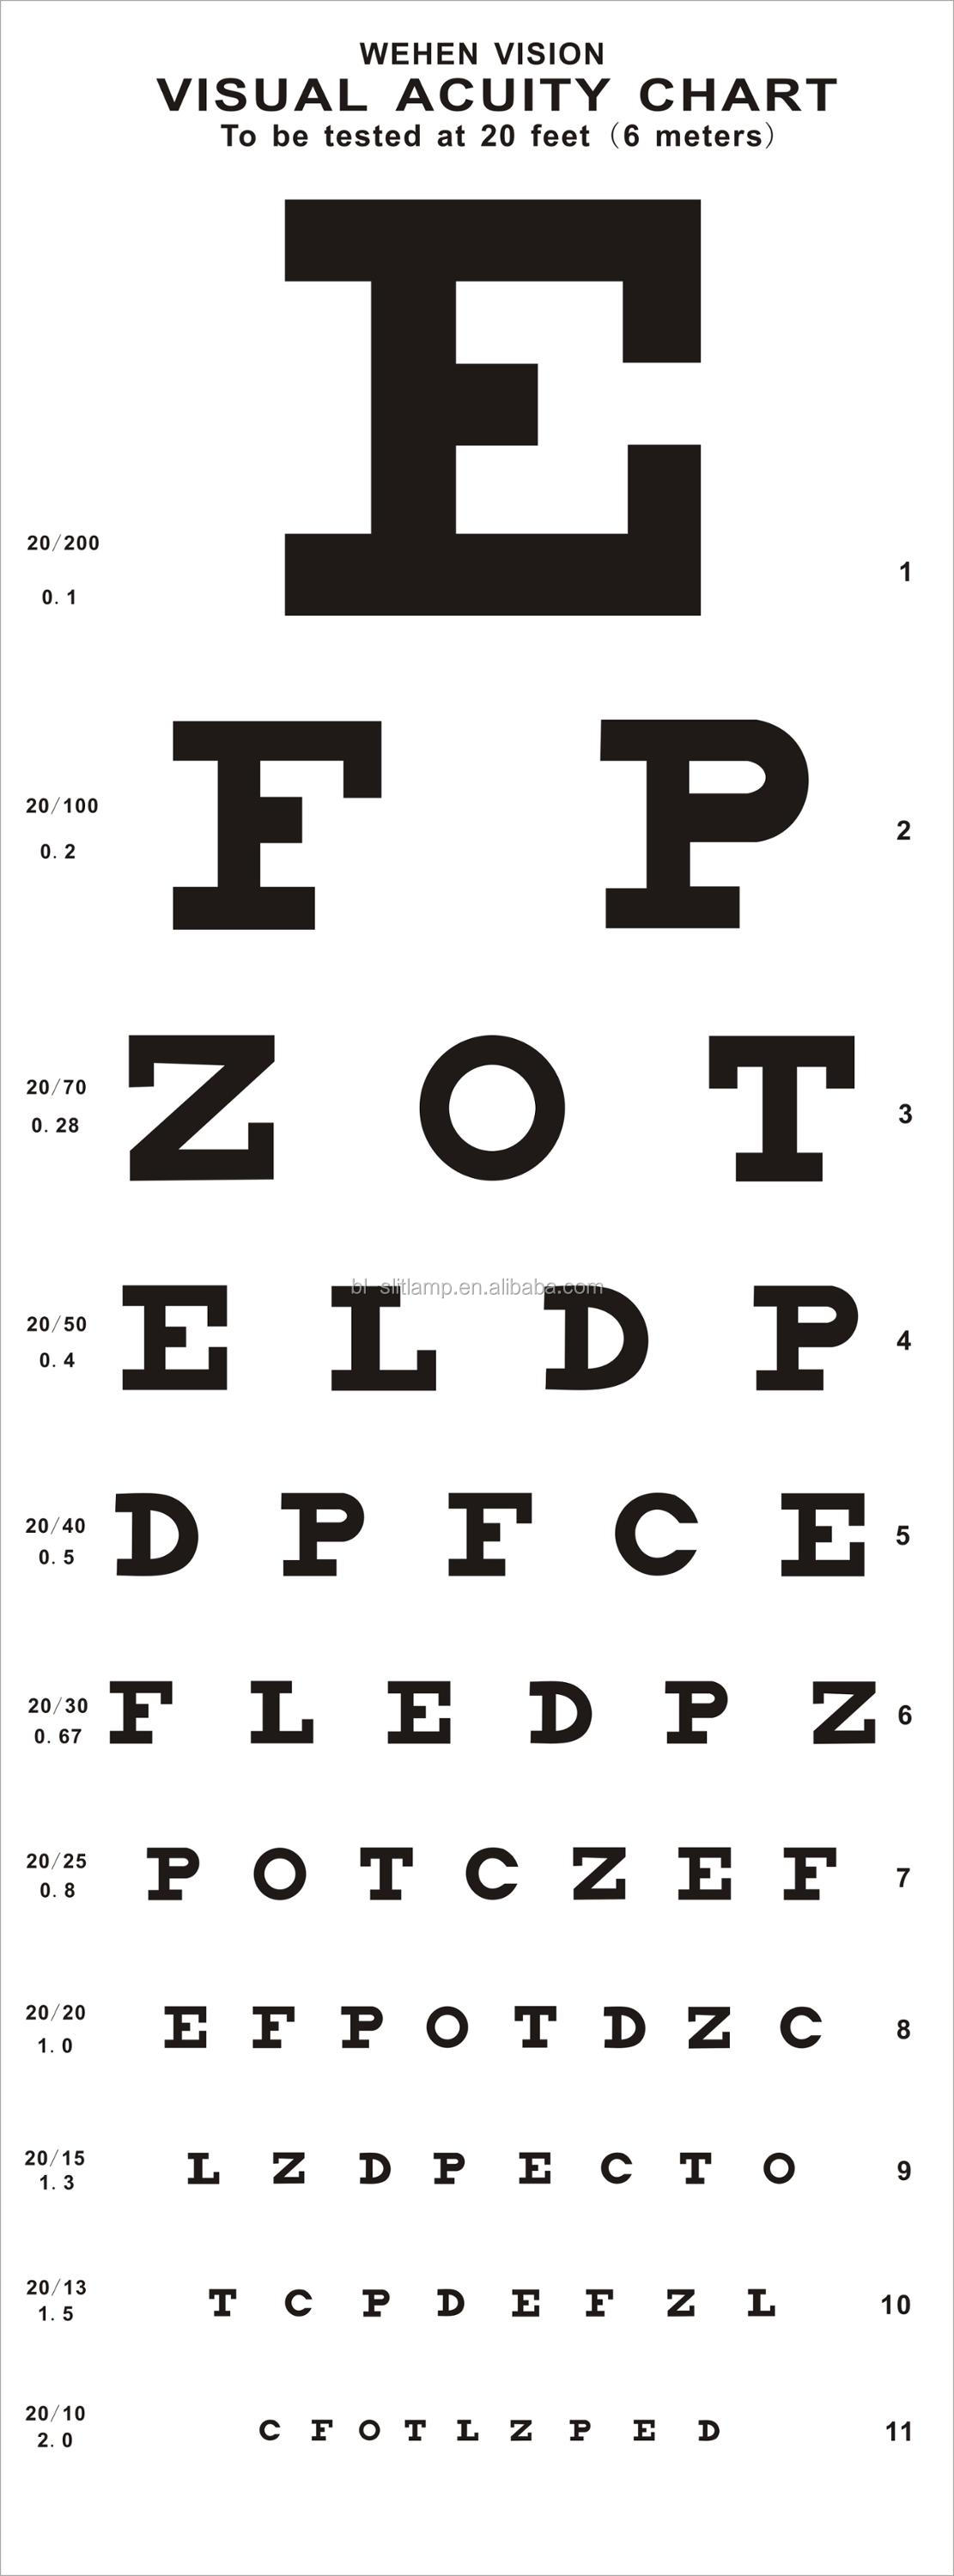 Chinese Optical Ophthalmic Snellen Chart Vision Test Visual Acuity